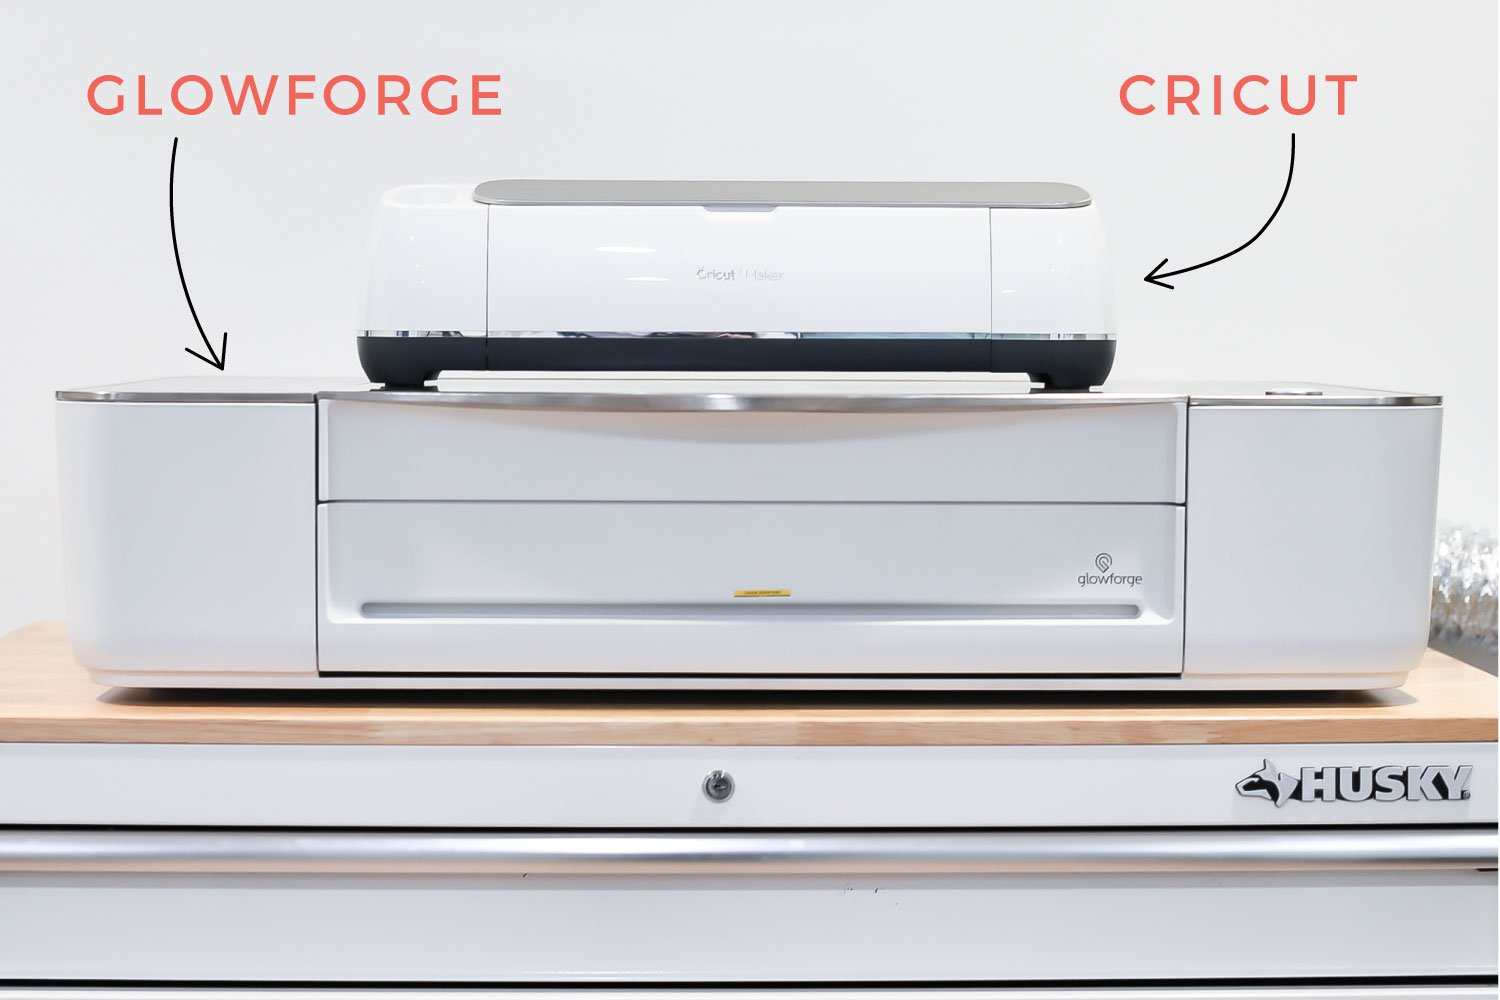 Glowforge and Cricut size comparison.